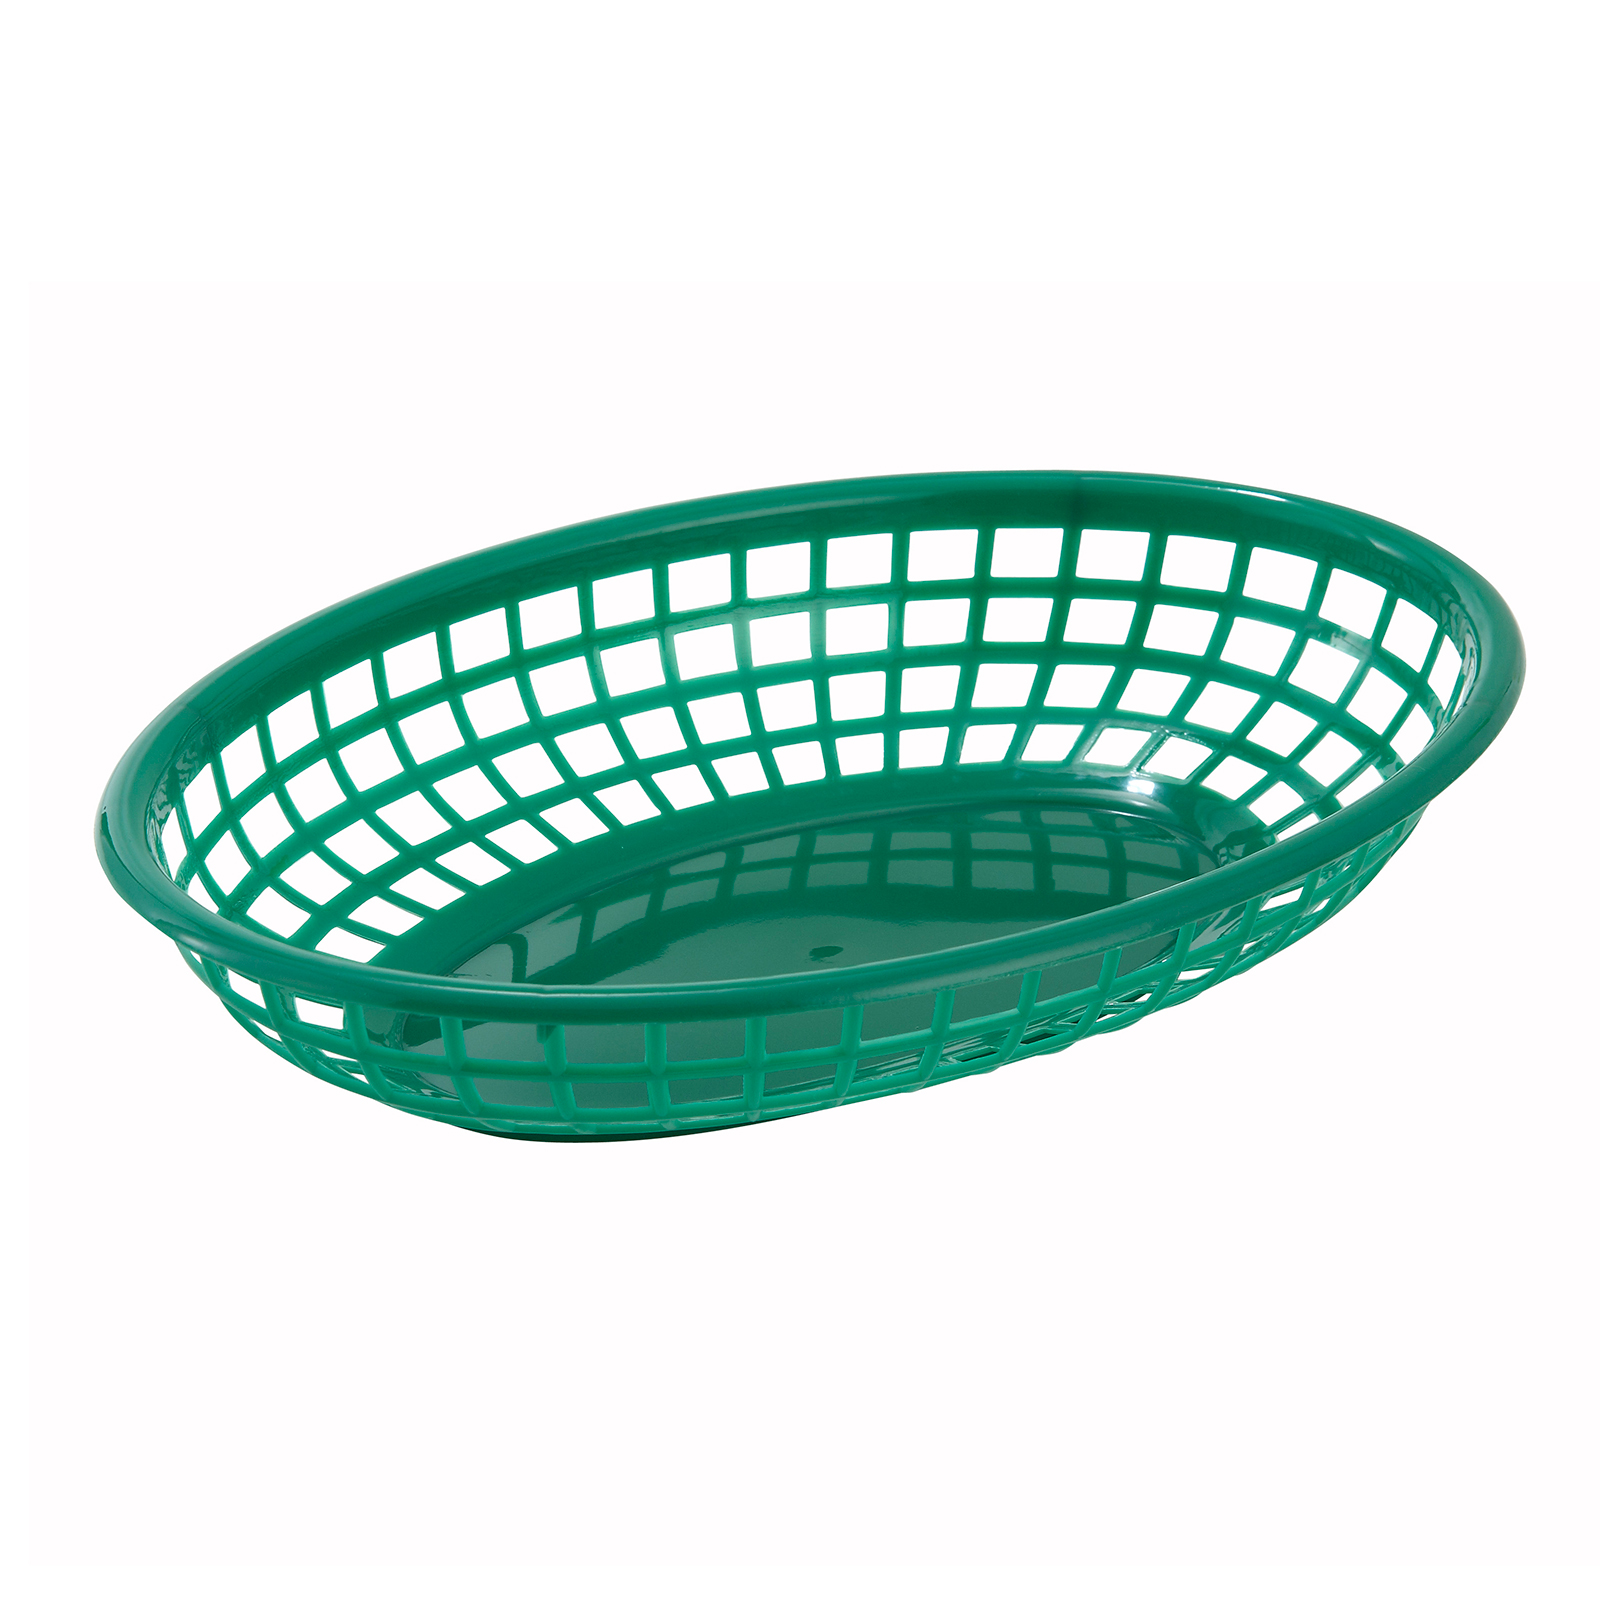 Winco PFB-10G basket, fast food